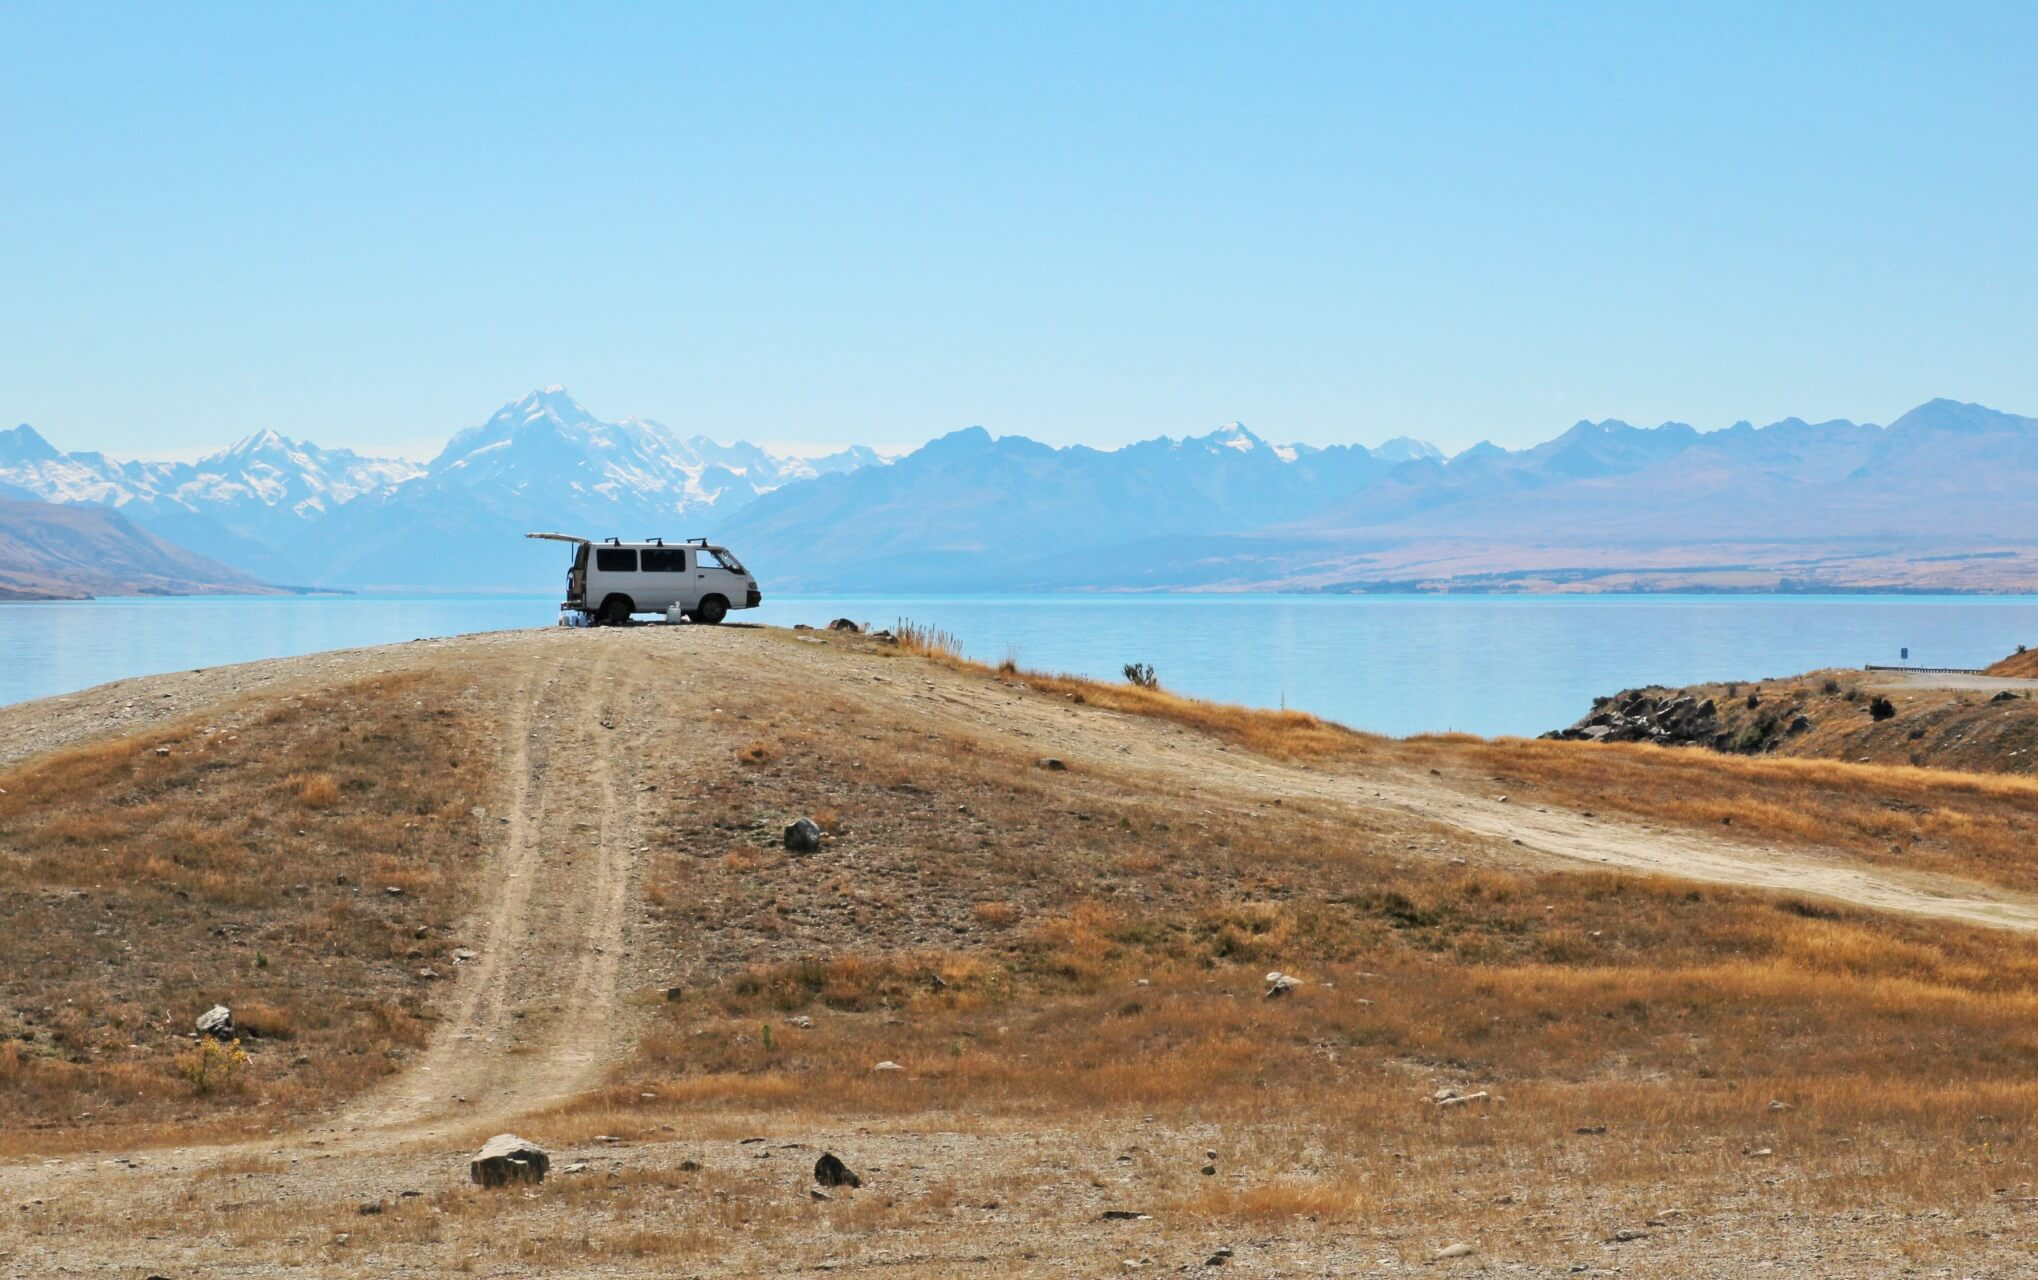 Camping am Lake Pukaki in Neuseeland